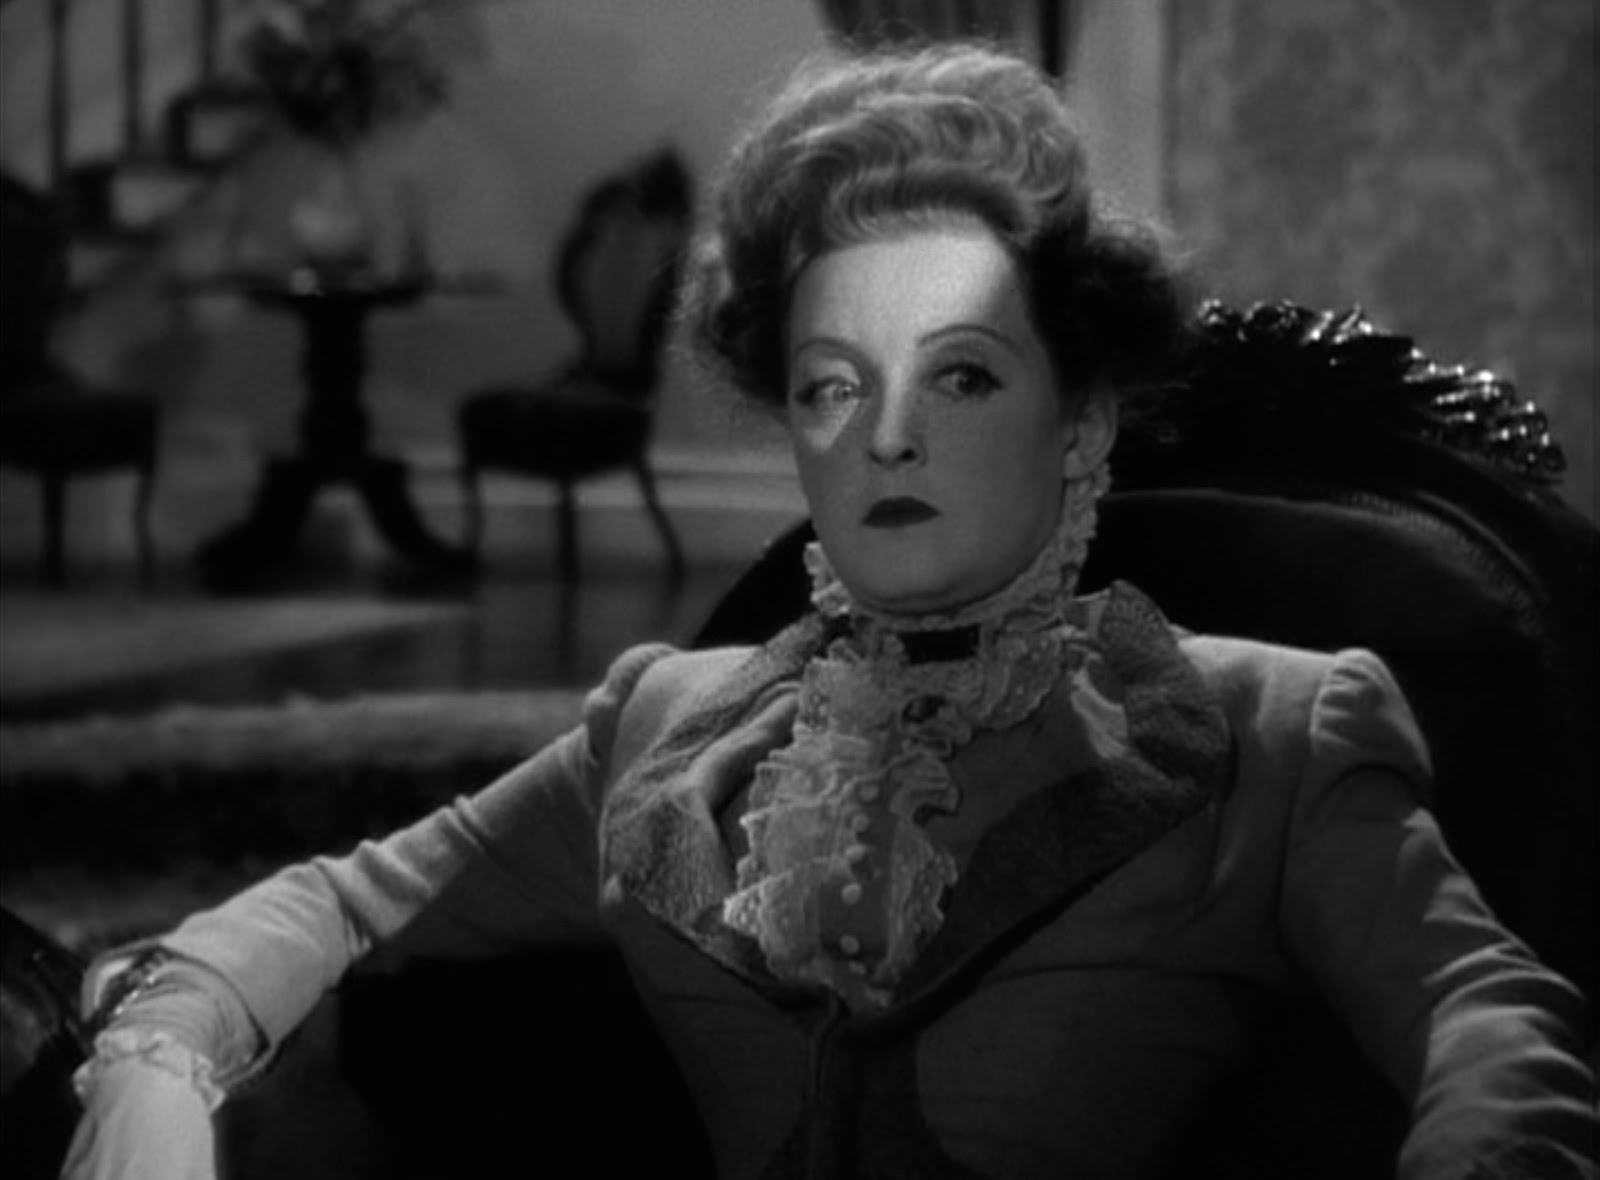 225. The Little Foxes (1941)